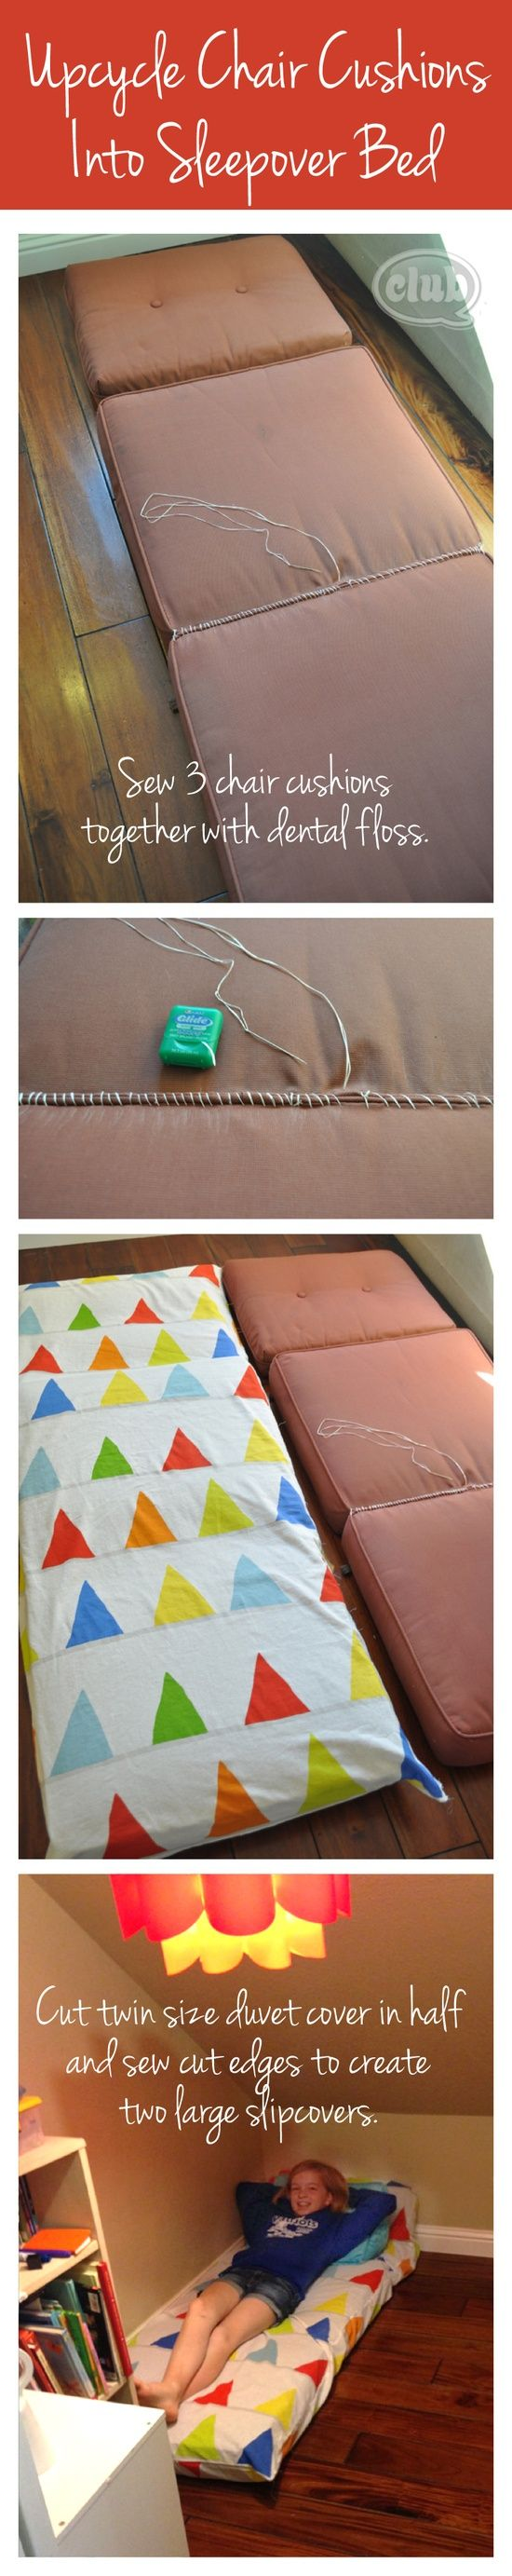 chairs chair cushions upcycle cushions outdoor chairs diy and crafts